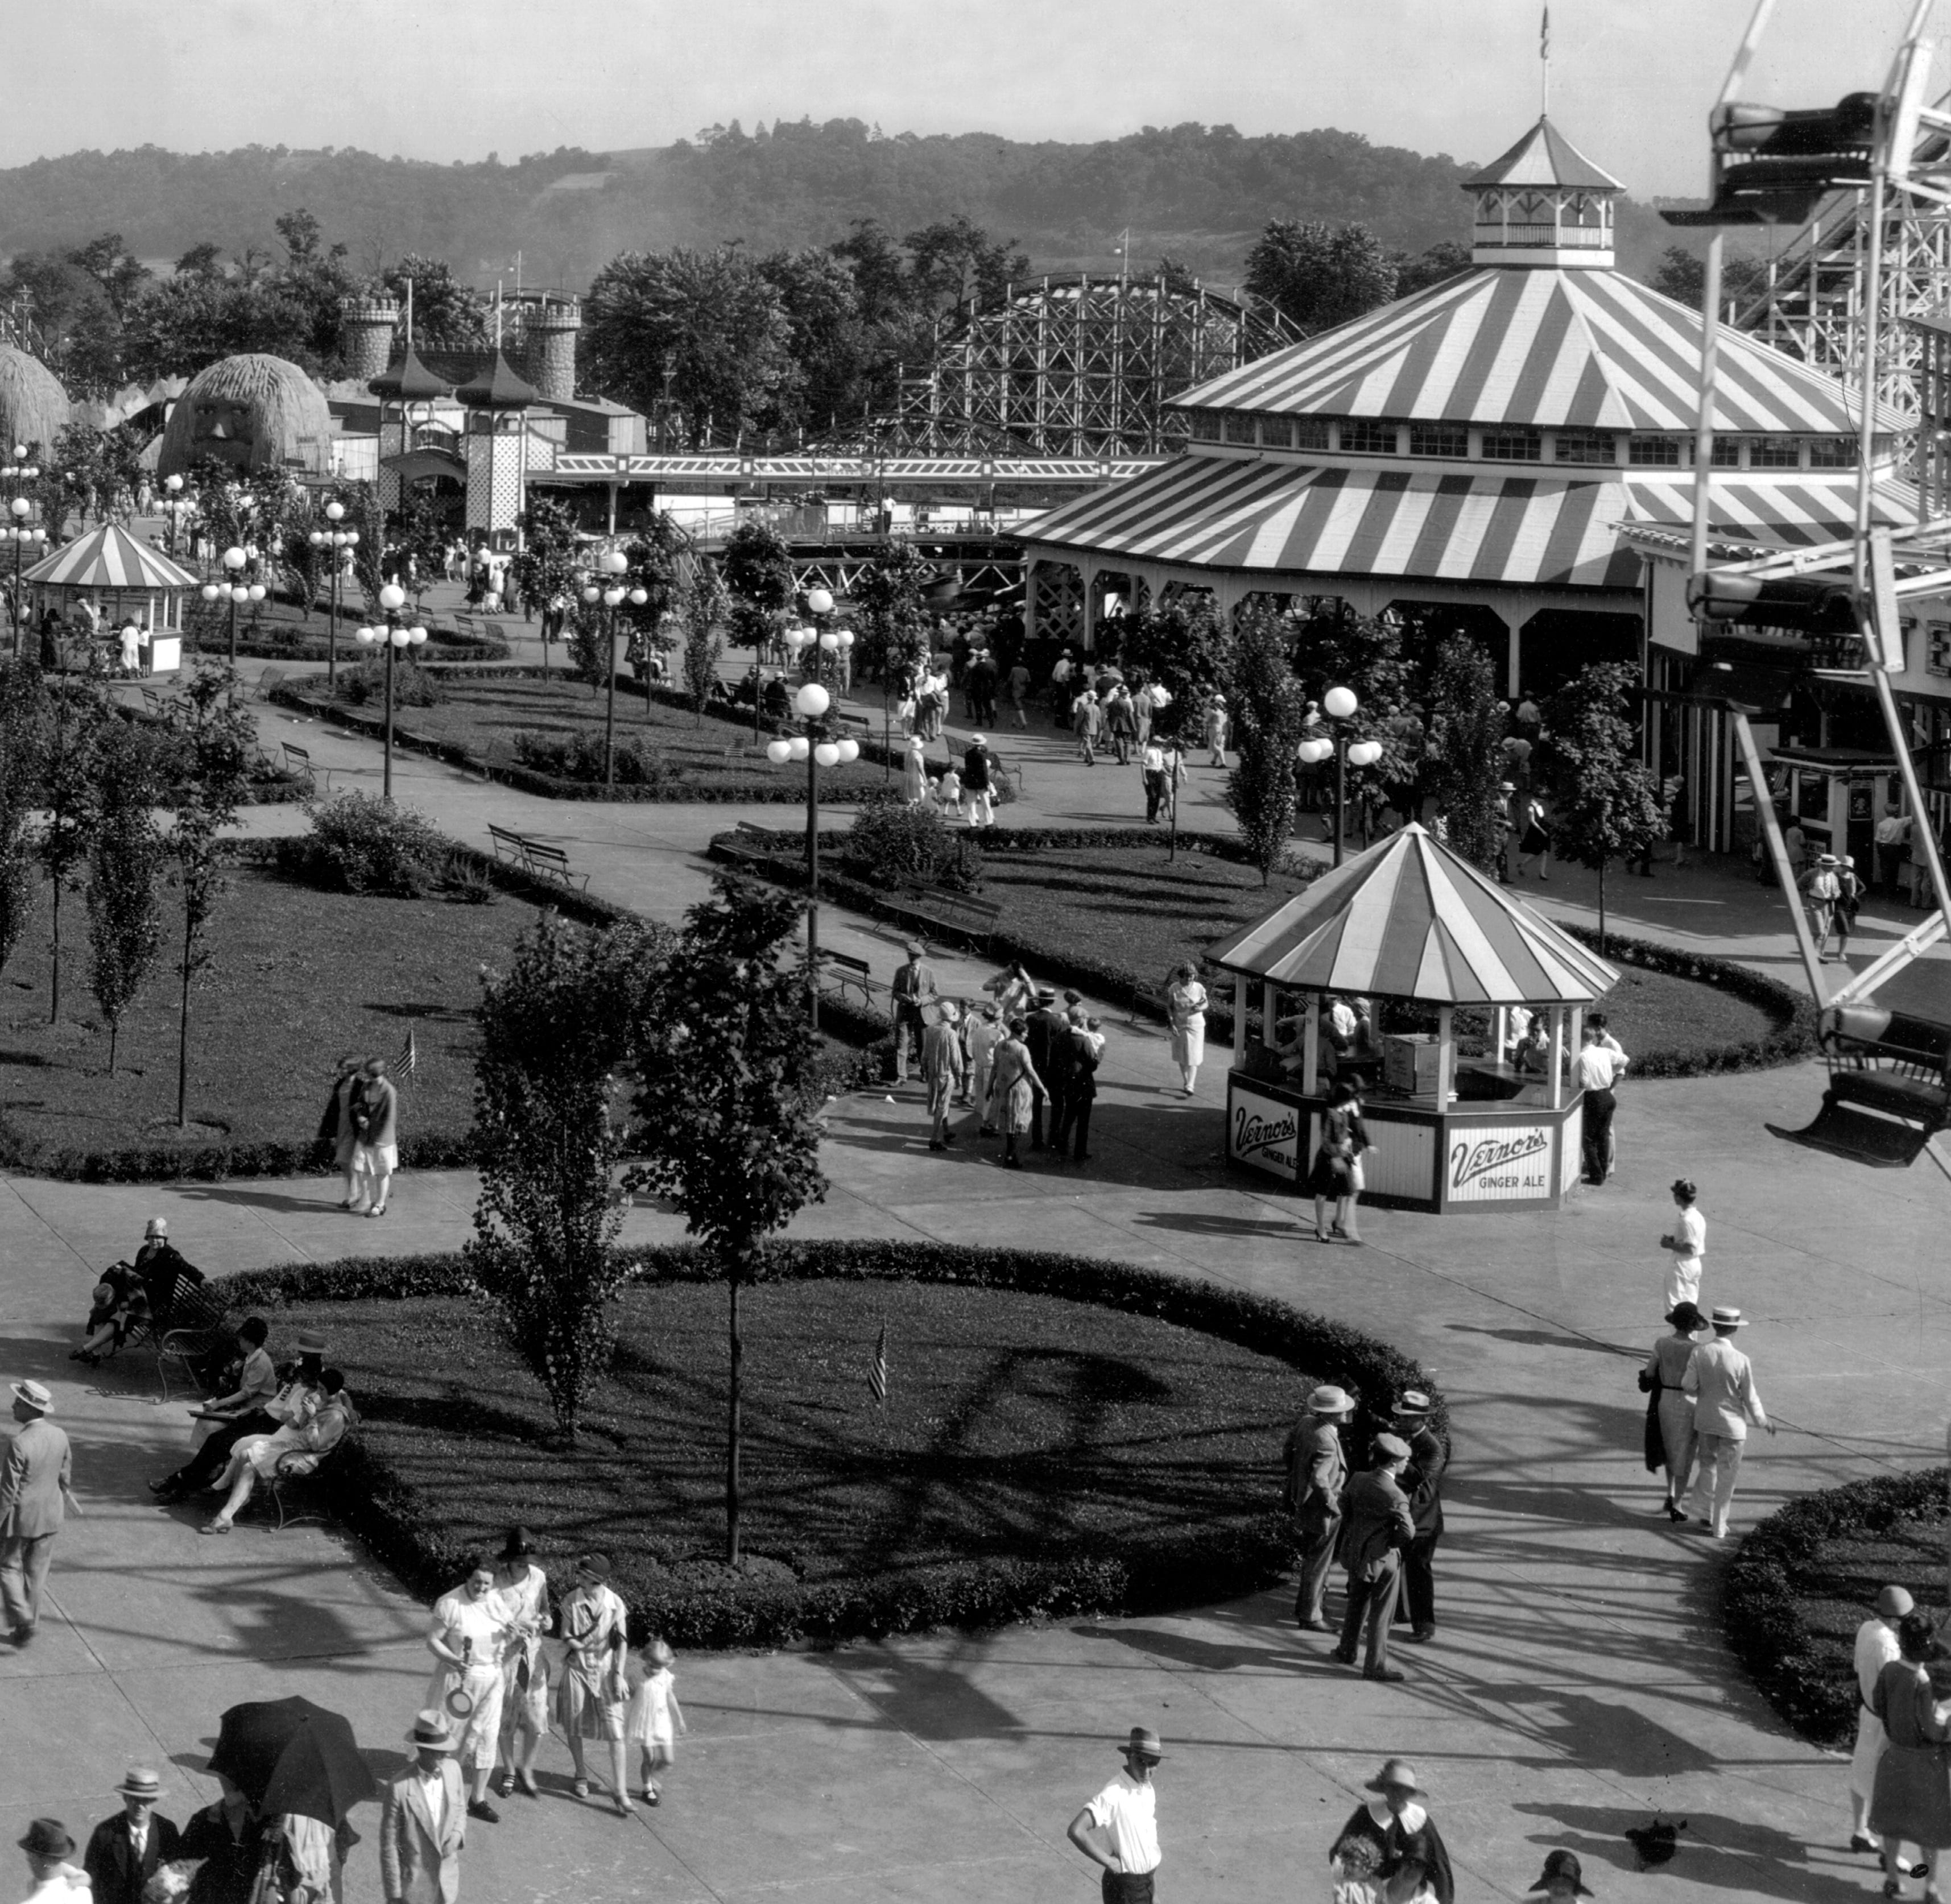 Our history: A history of the area's favorite amusement parks